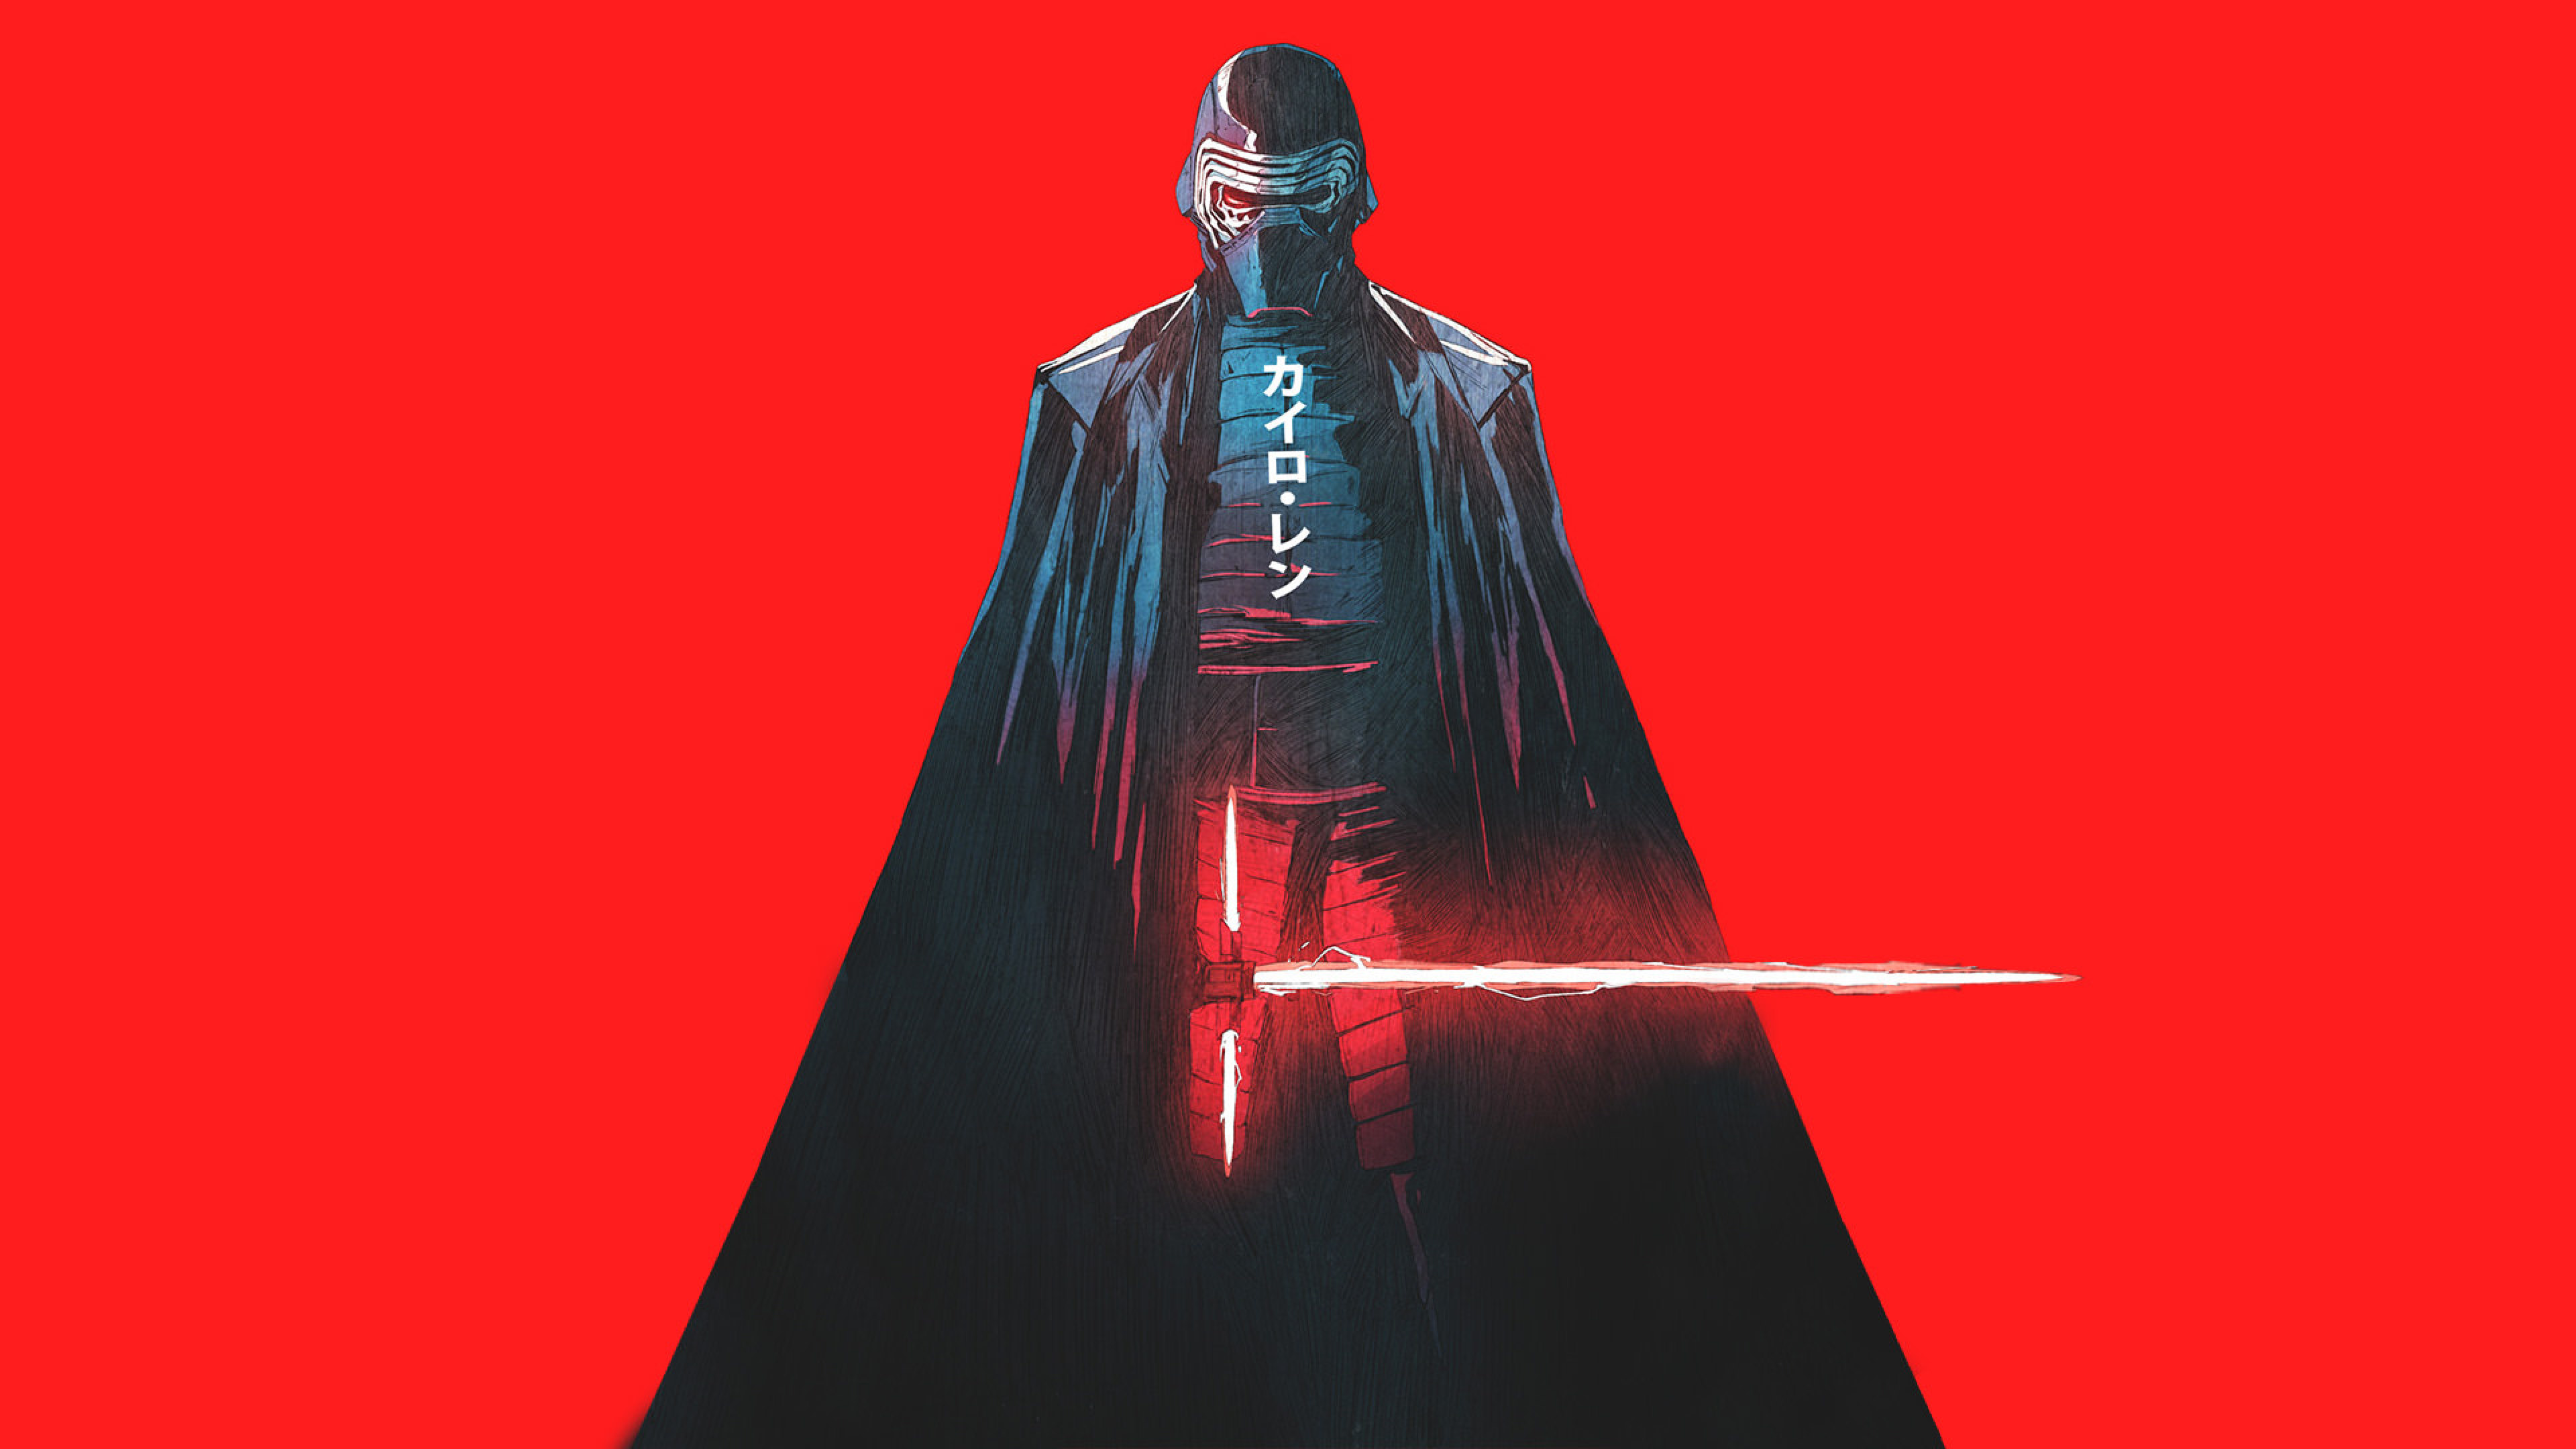 3840x2160 Kylo Ren Star Wars Artwork 4k Wallpaper Hd Movies 4k Wallpapers Images Photos And Background